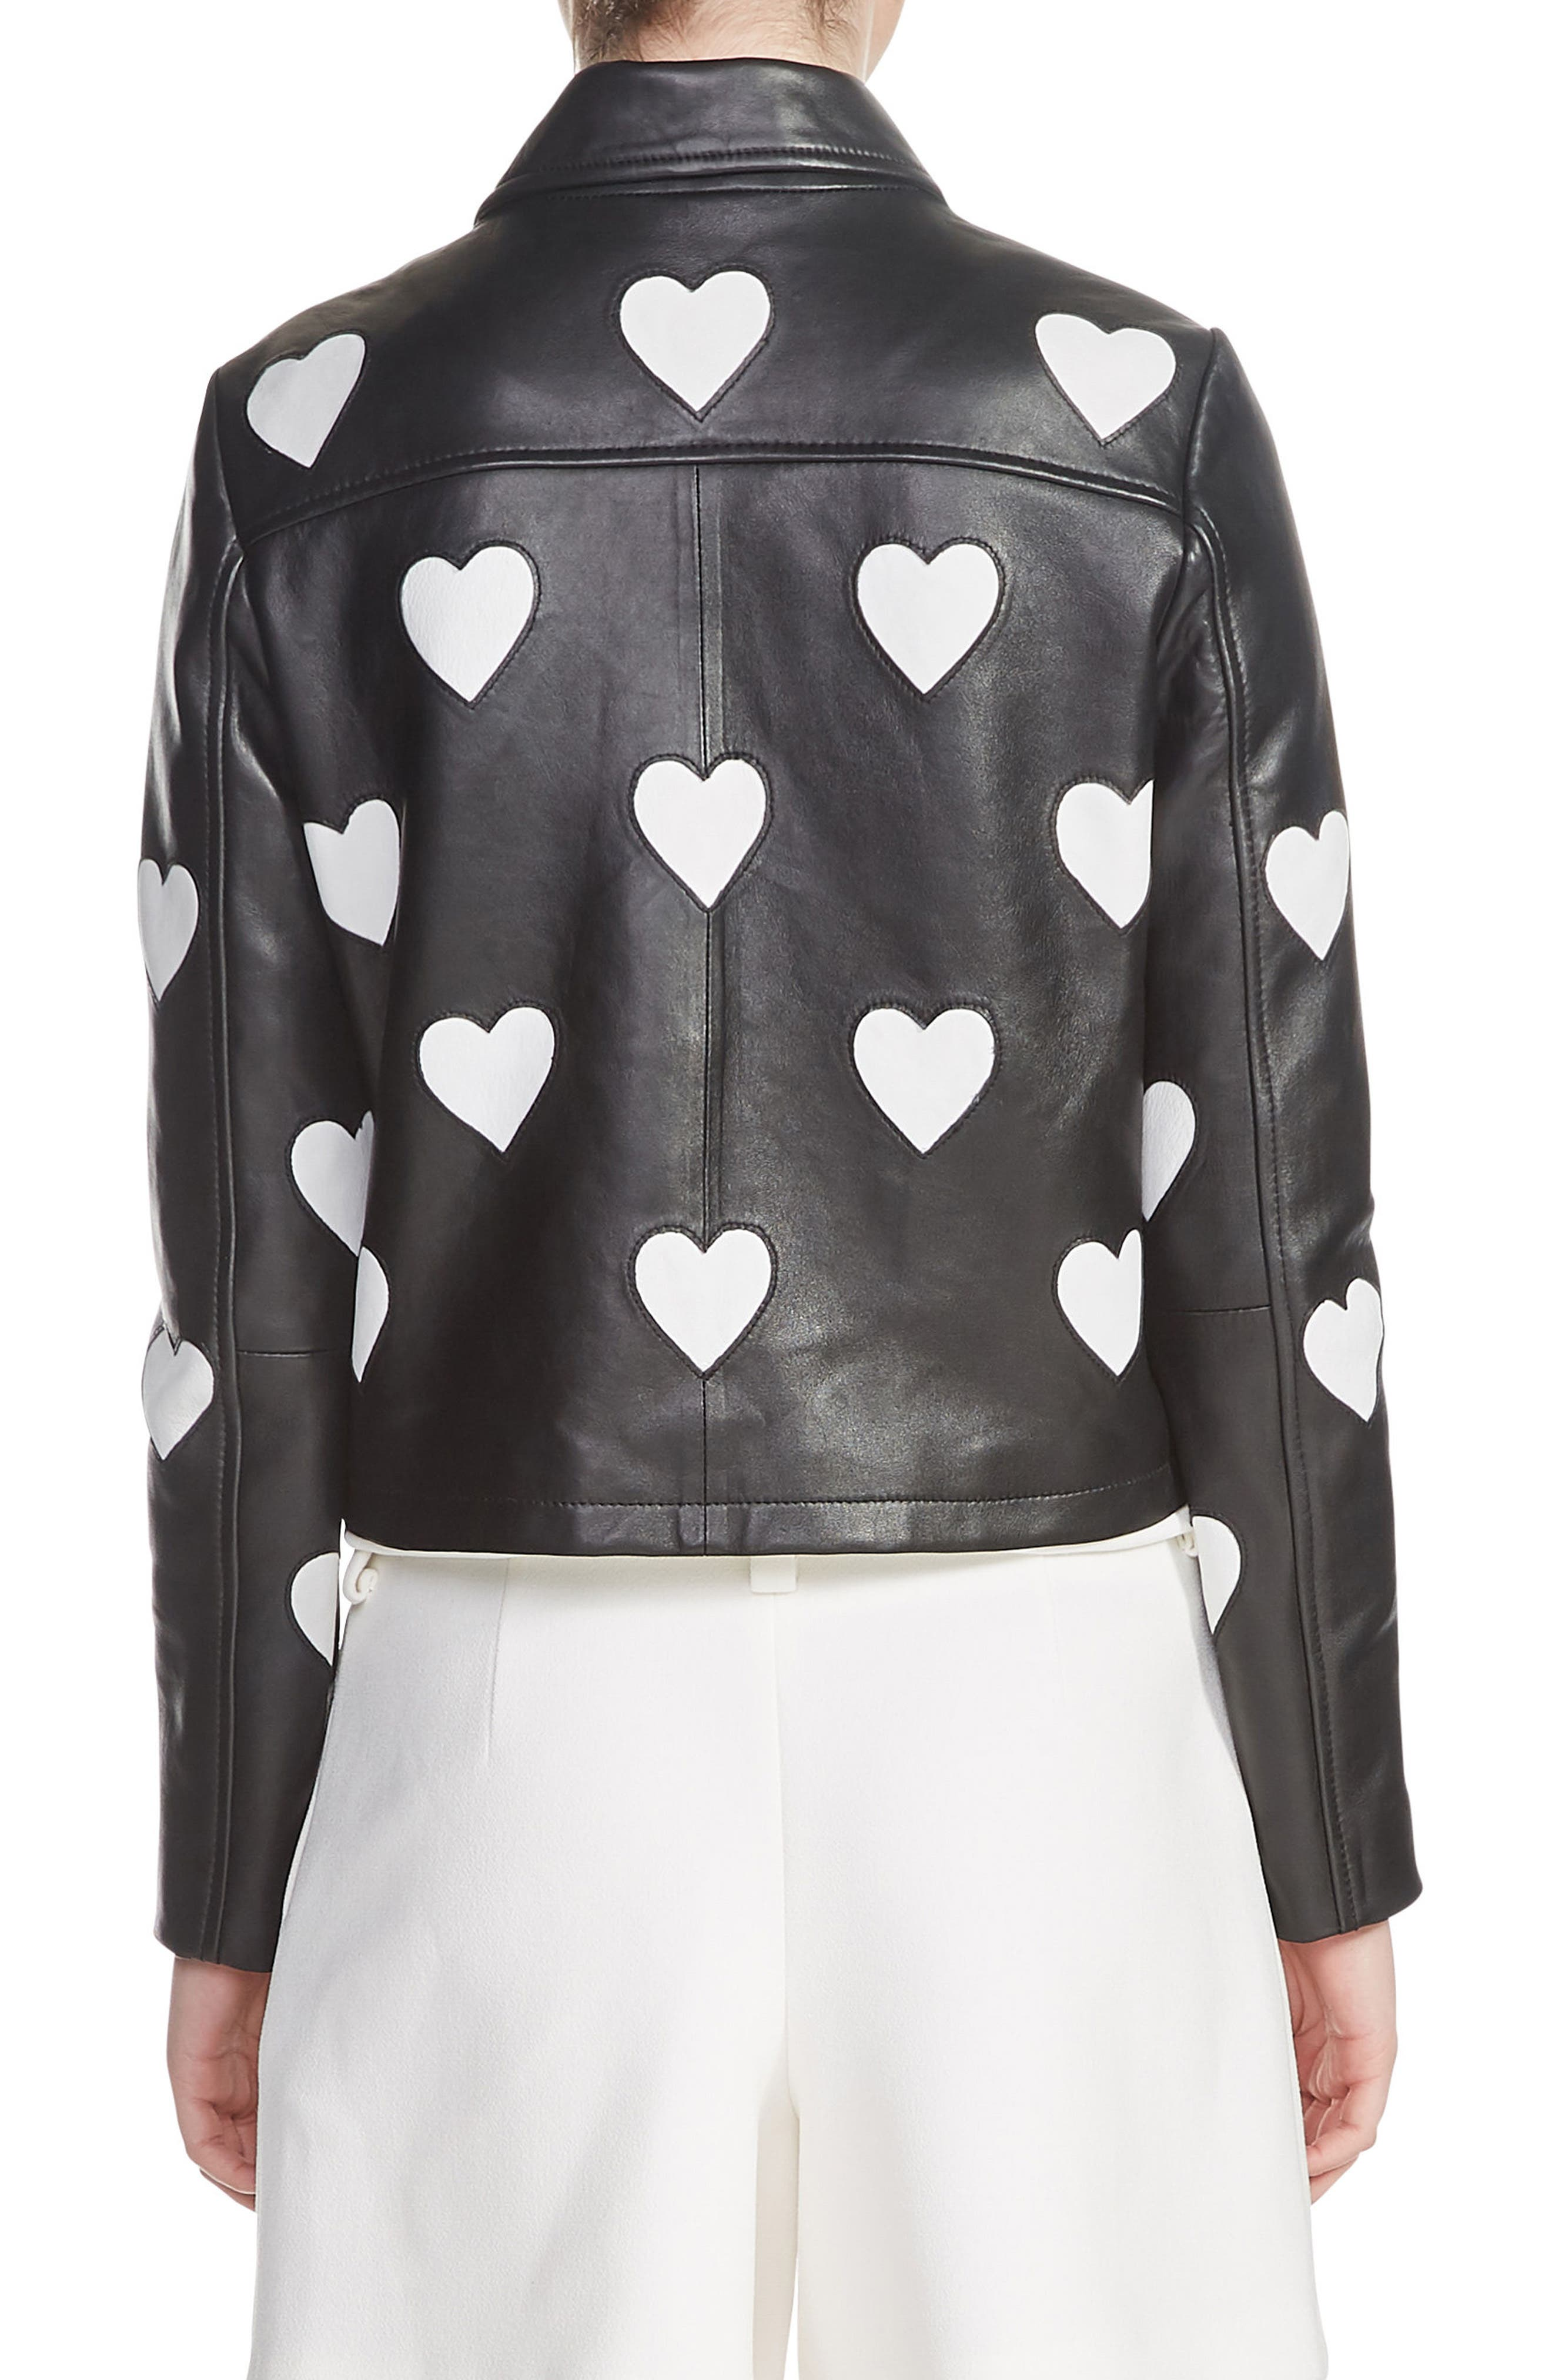 Heart Inset Leather Jacket,                             Alternate thumbnail 2, color,                             001